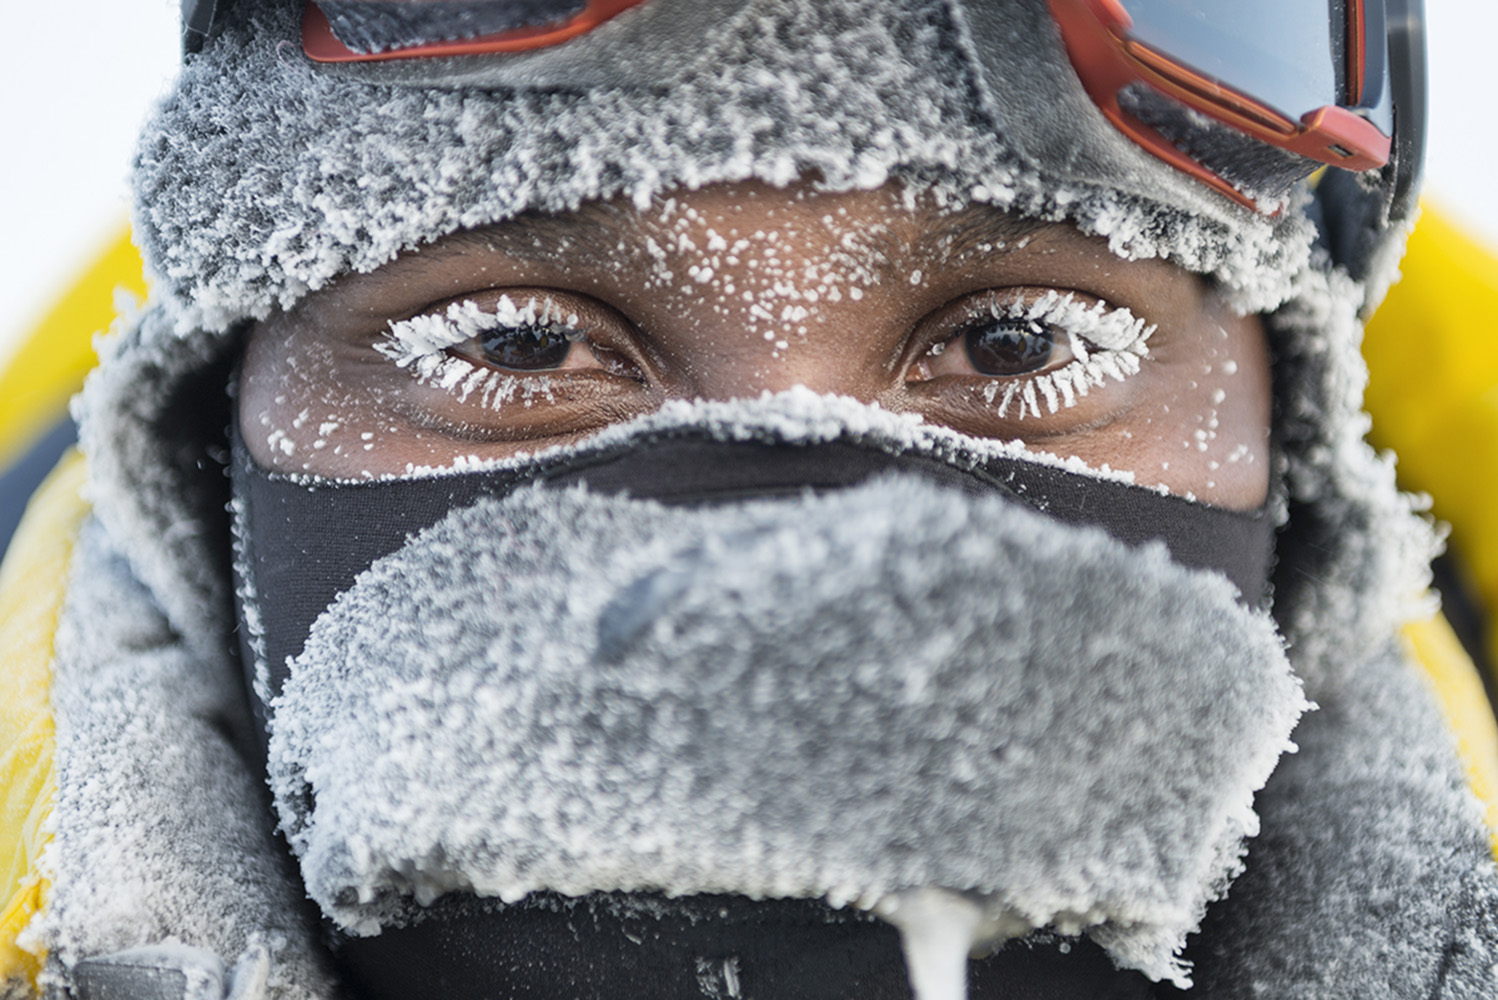 Renny Bijoux, youth ambassador from the Seychelles, participating in the Greenpeace North Pole expedition. The team, most of them without any previous polar experience, skied to the North Pole and lowered a capsule 4.3 Km onto the sea bed, containing signatories to their campaign to protect the Arctic from industrial development.